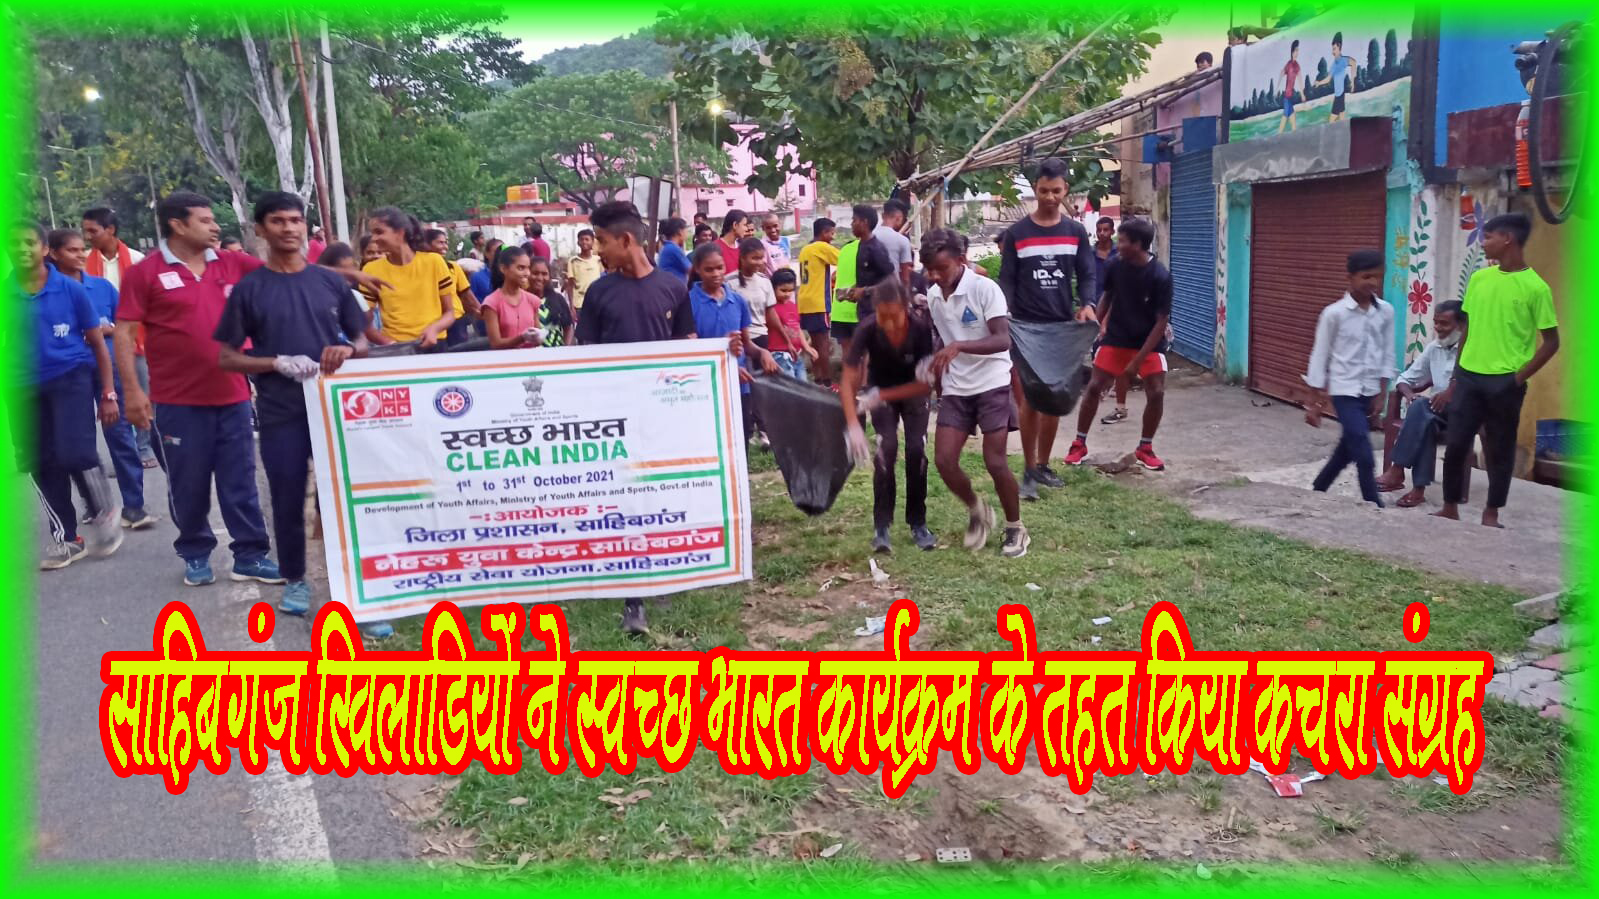 In Sahibganj, players did garbage collection under the Swachh Bharat program